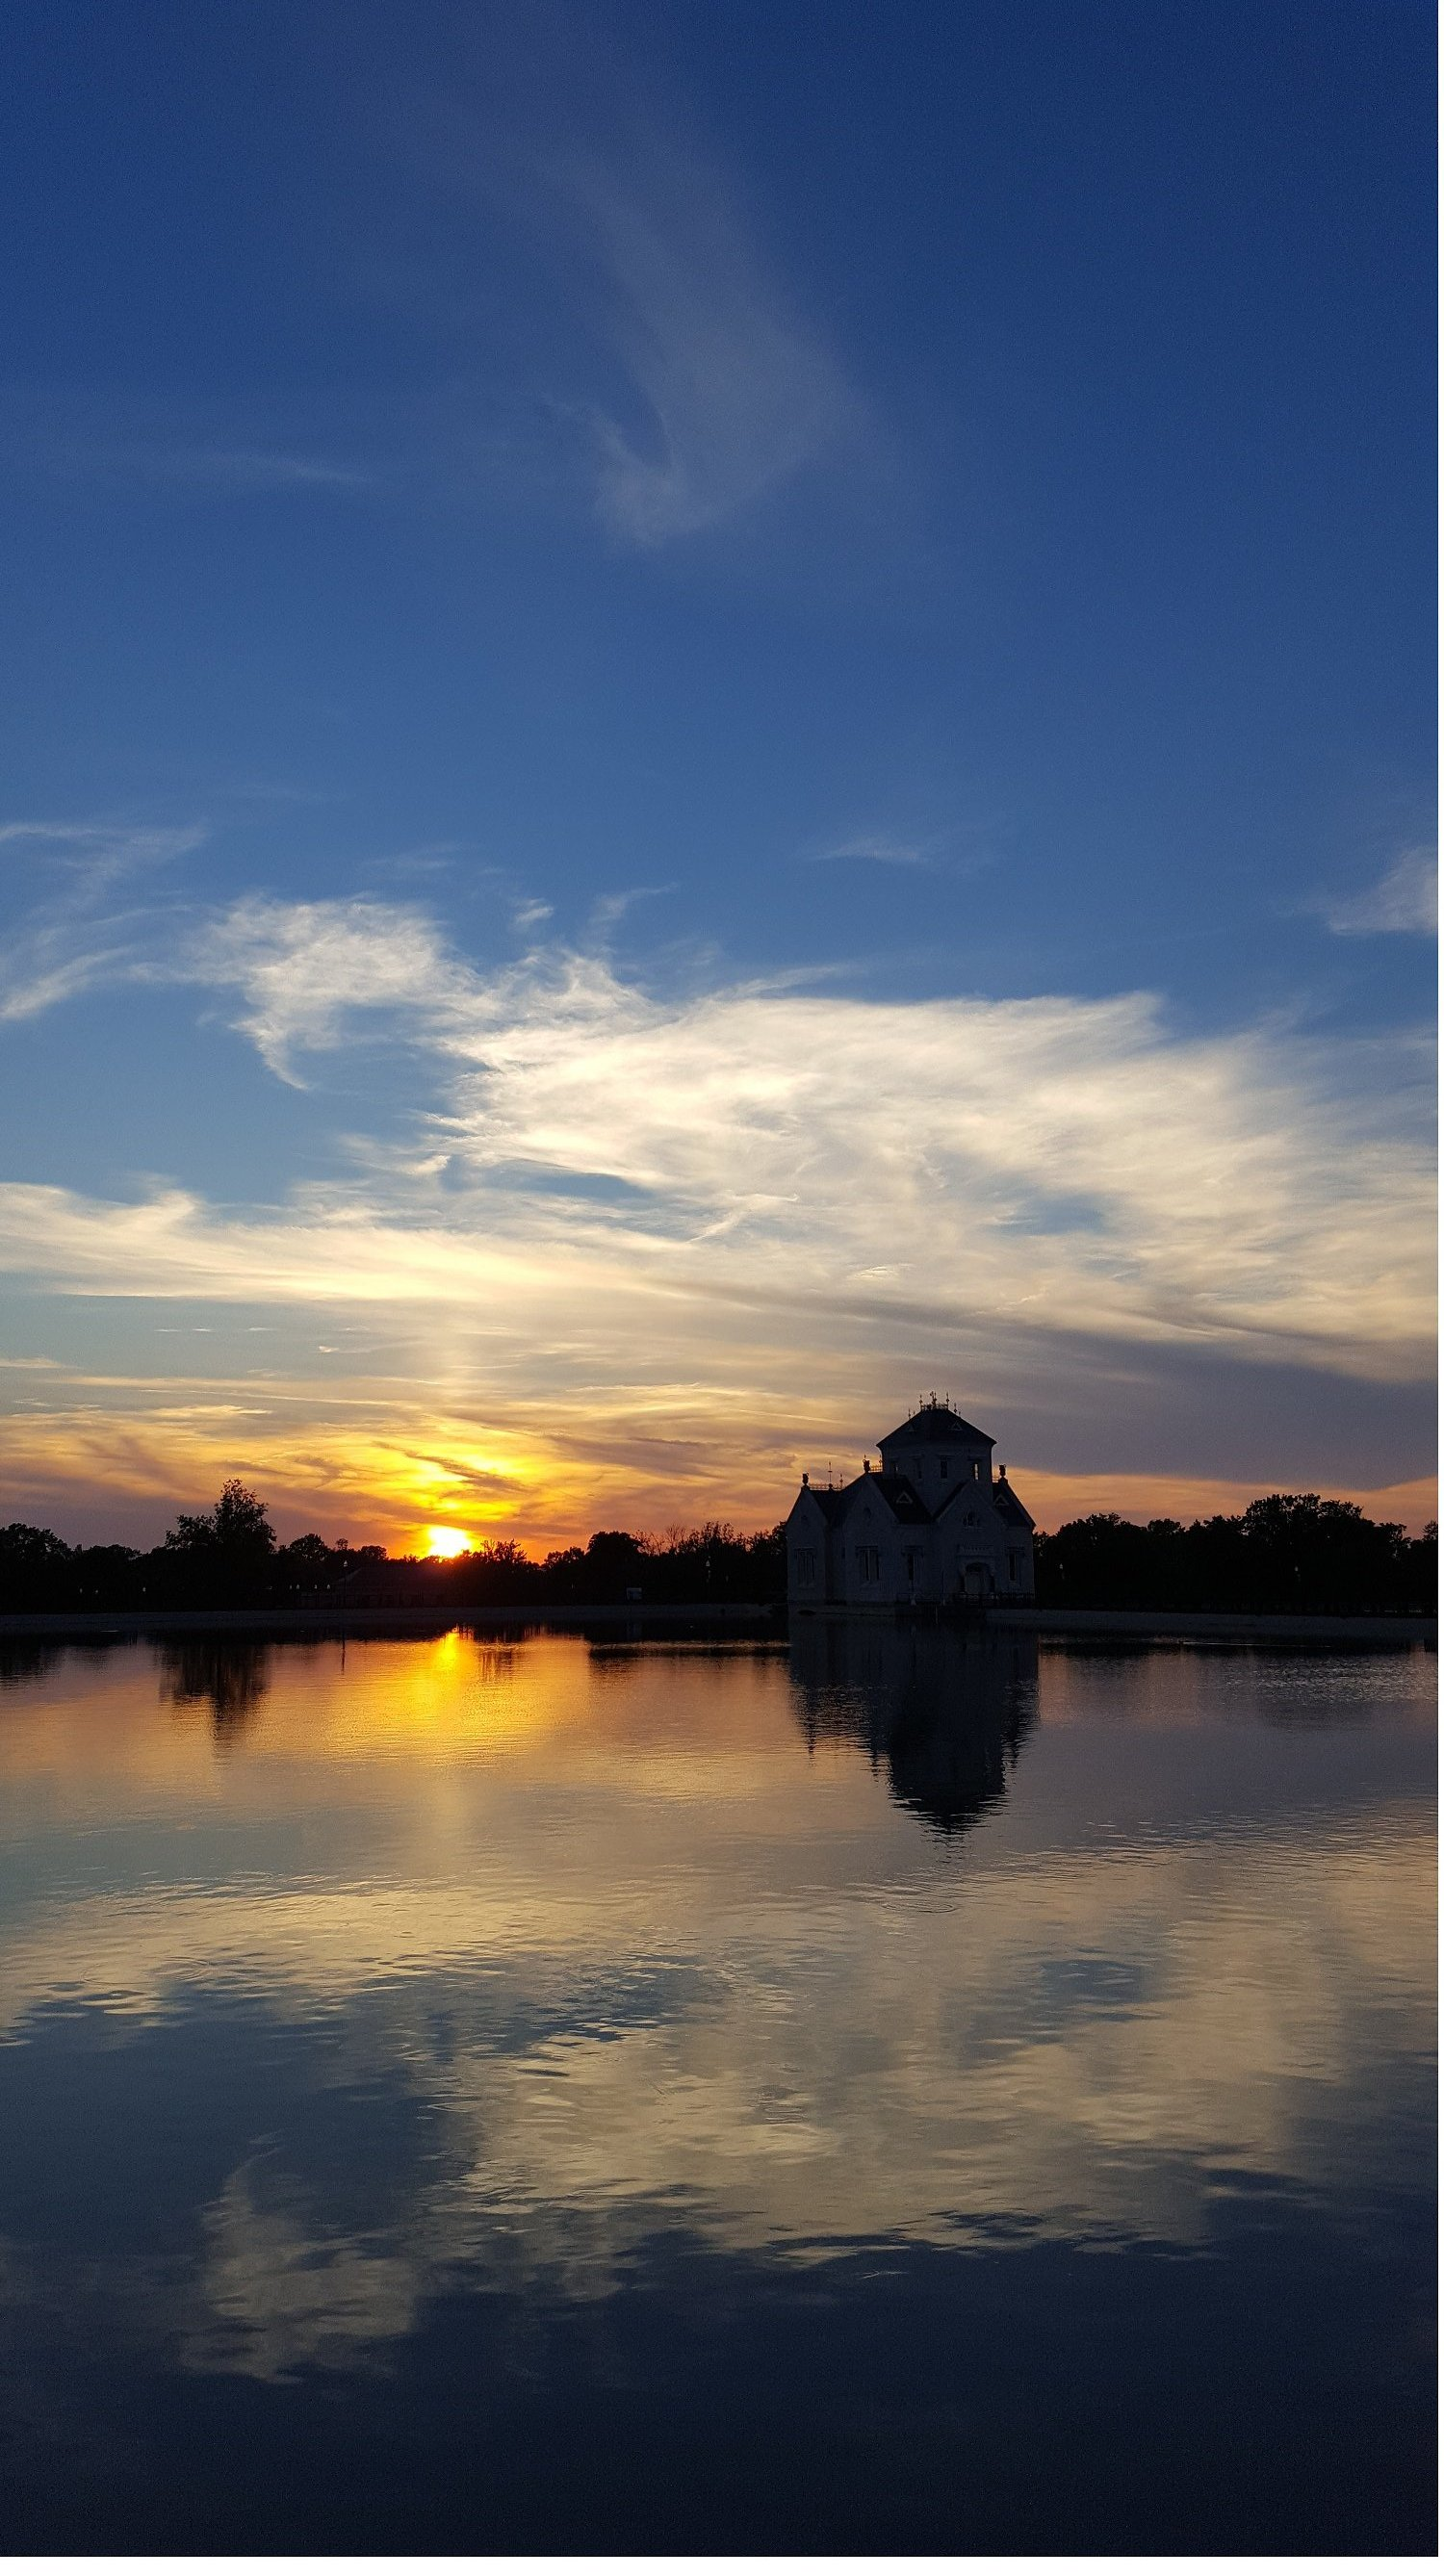 Reservoir and gatehouse at sunset. Photo by me.